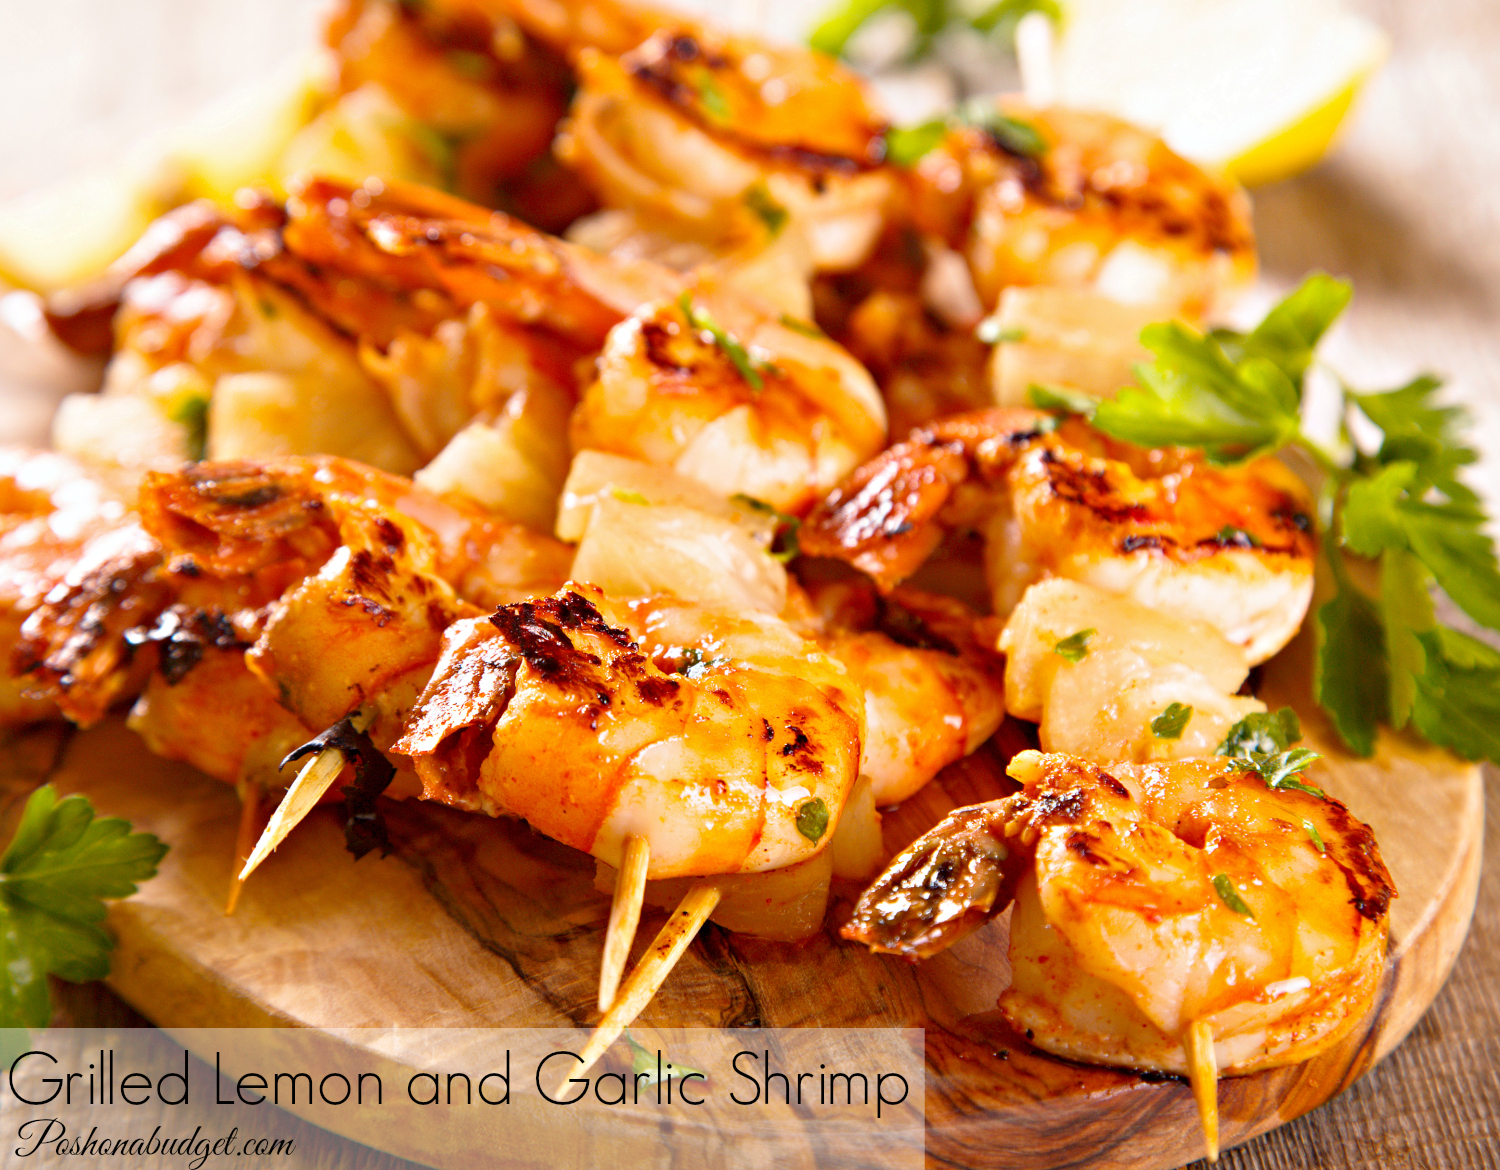 Grilled Lemon Garlic Shrimp